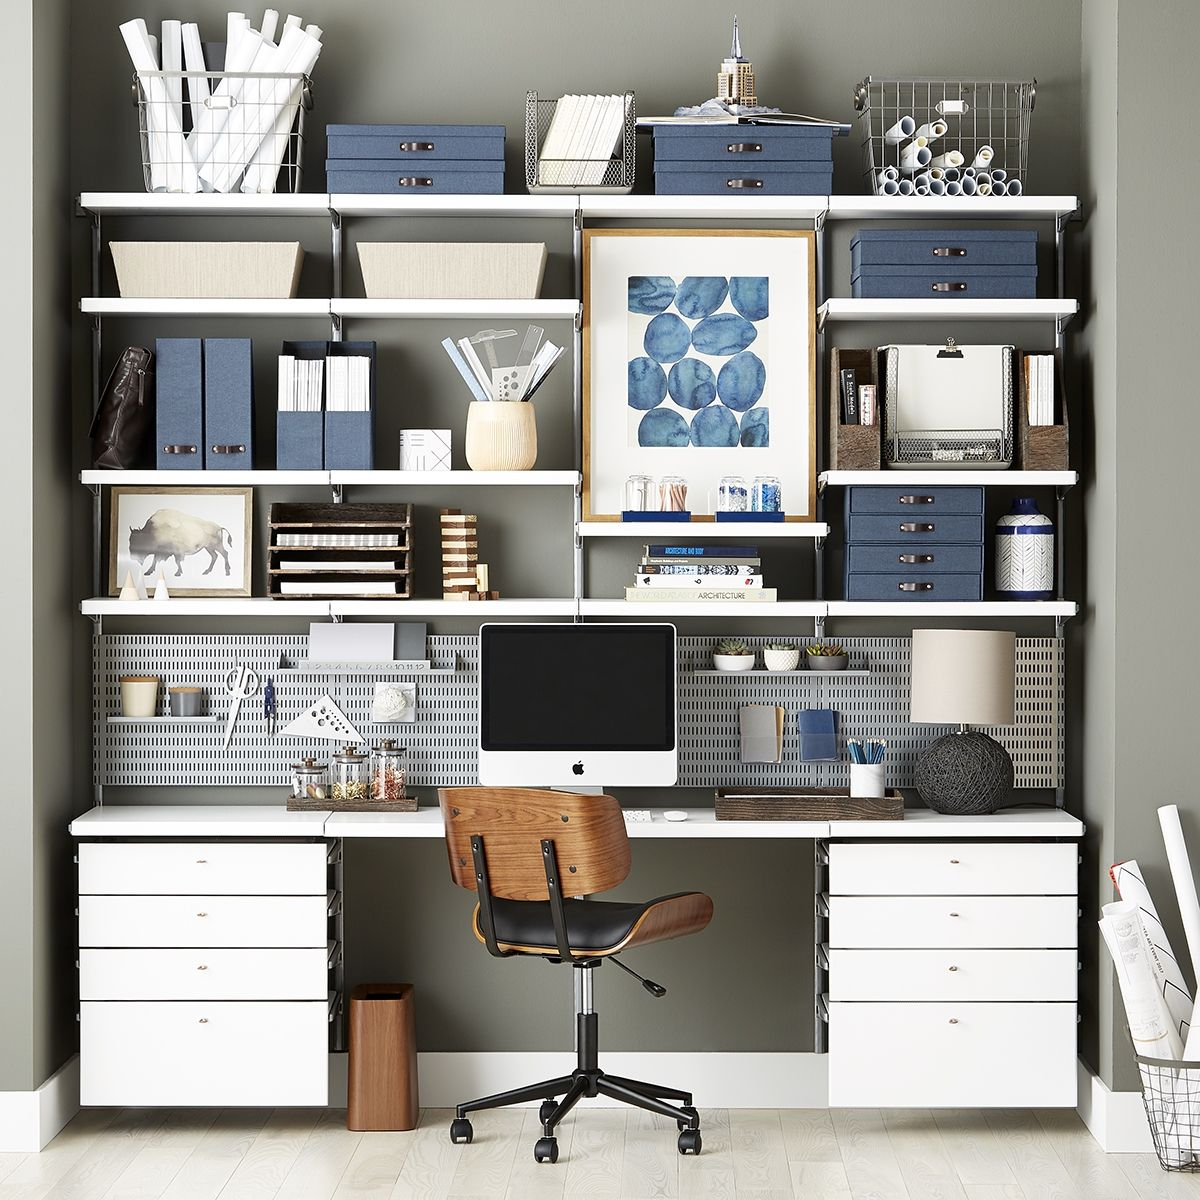 Create A Custom Home Office Solution With A Modular Shelving